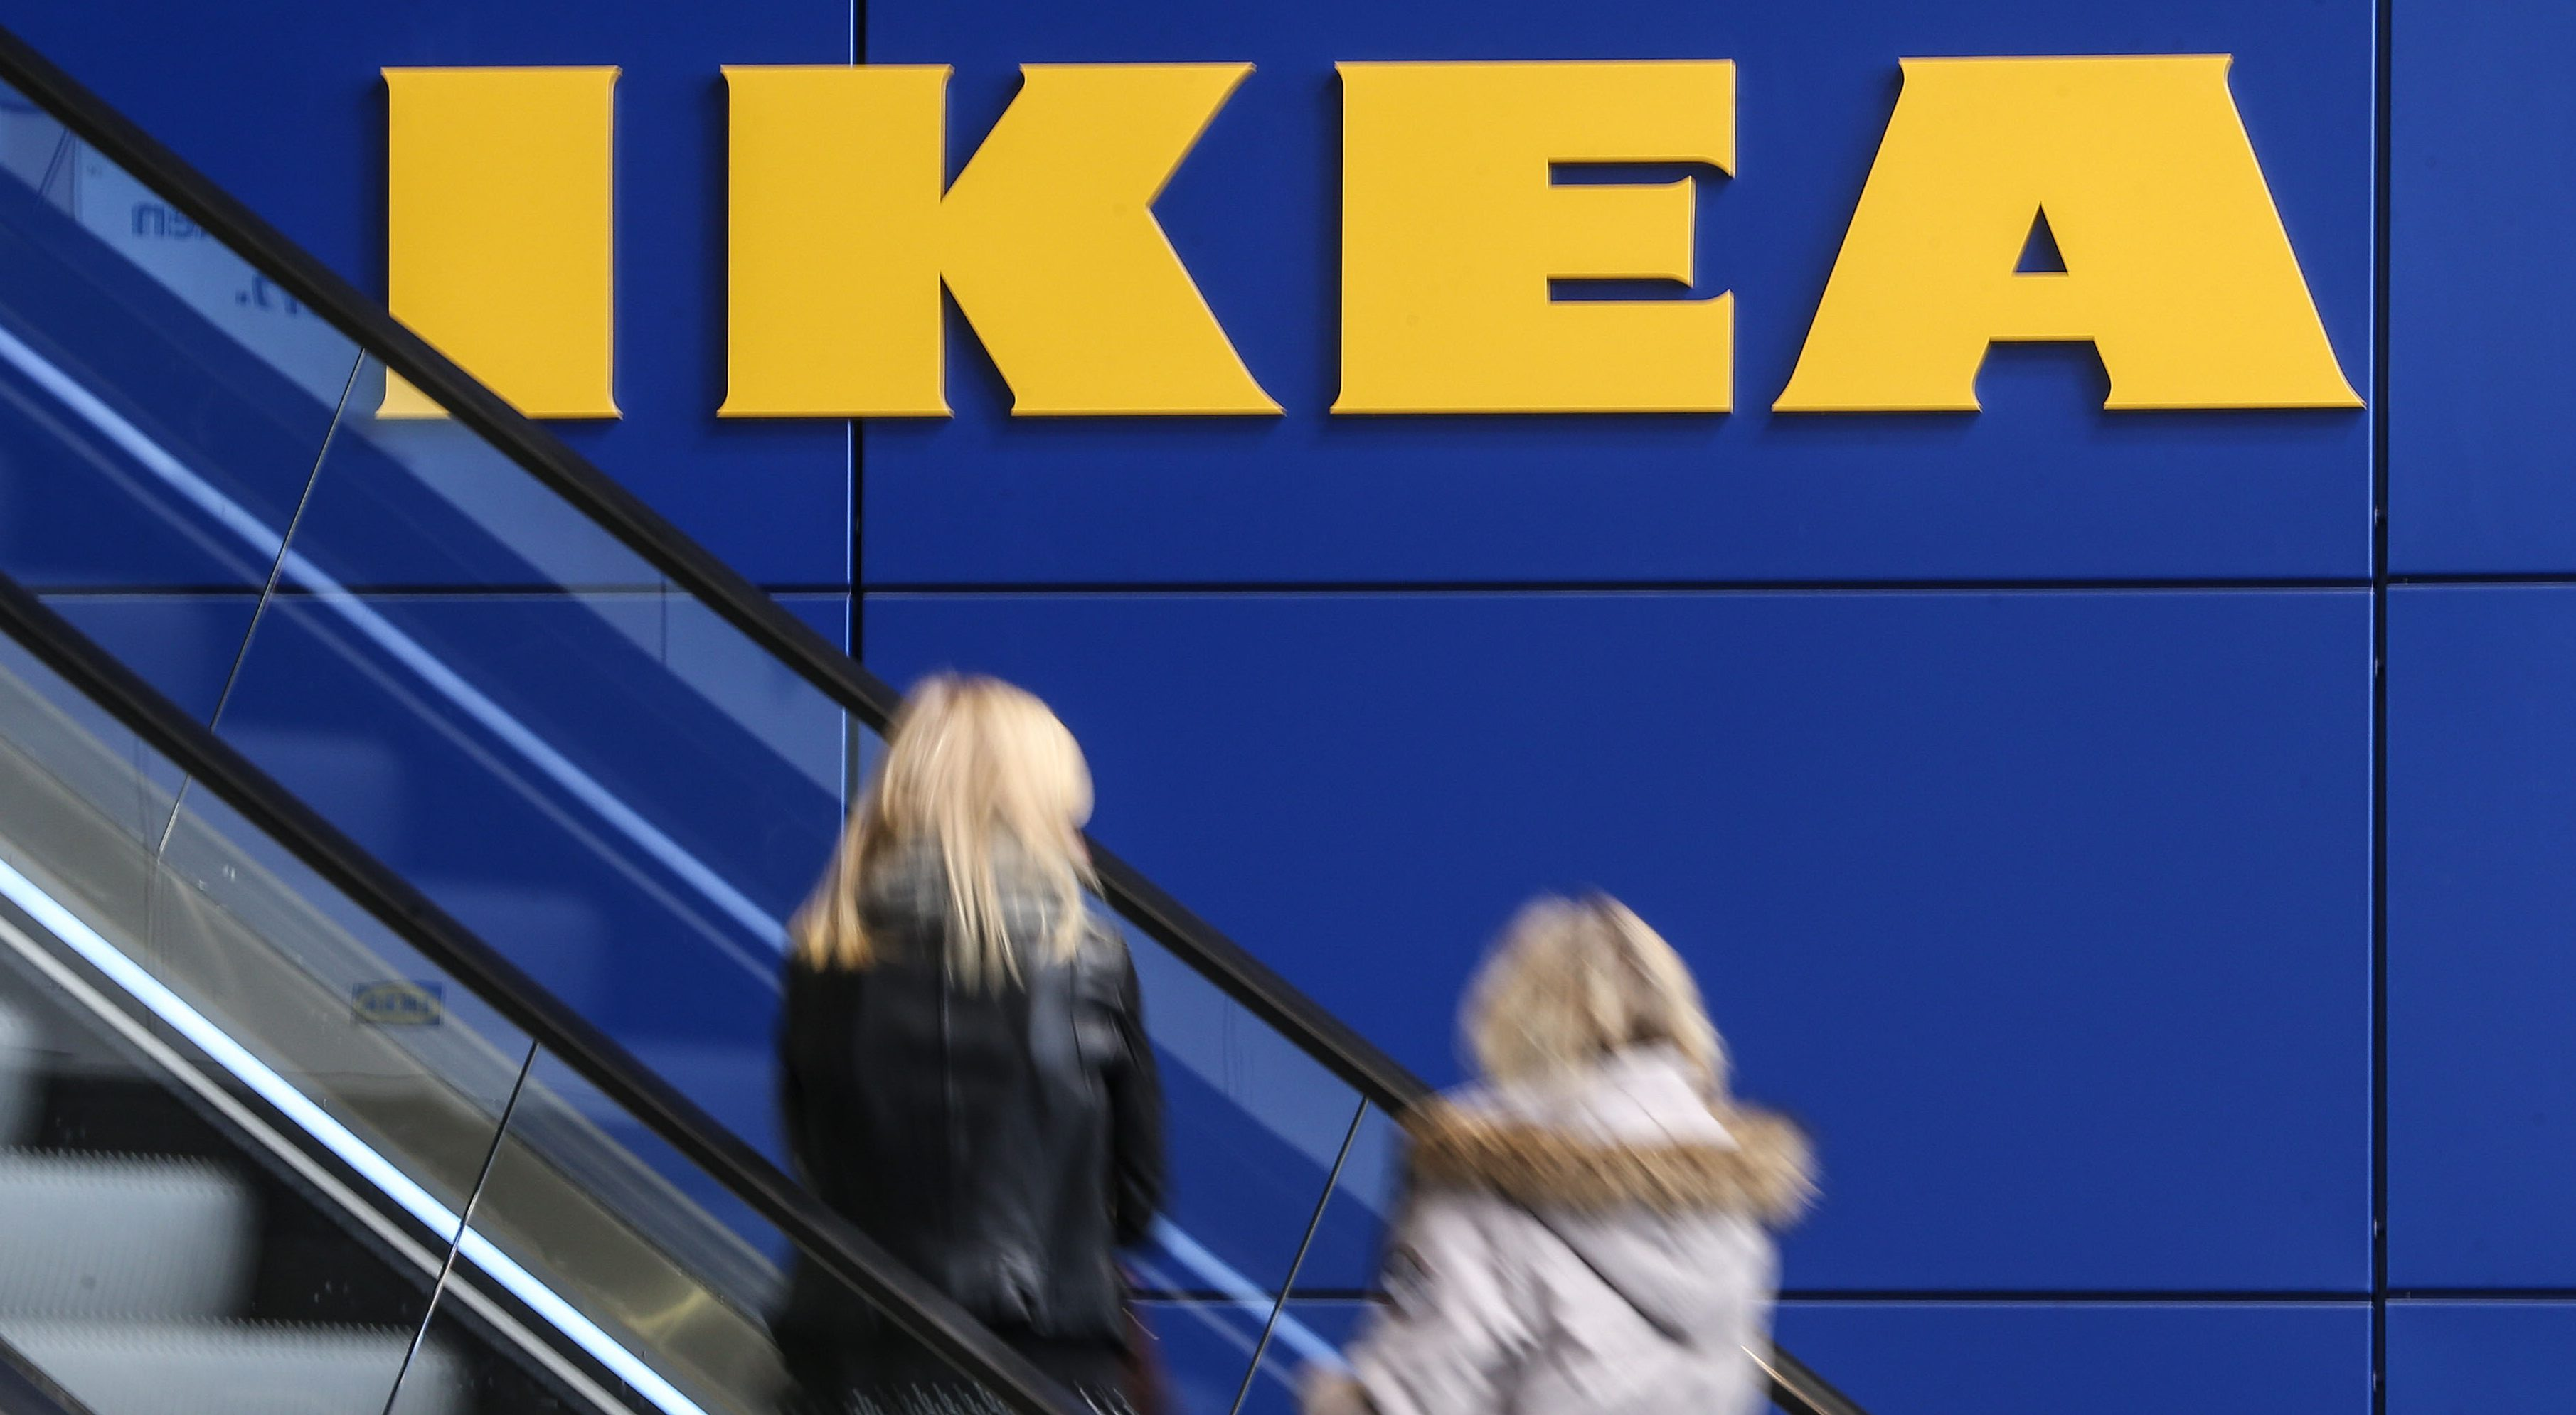 Www Ikea Nl How Ikea Names Its Products The Curious Taxonomy Behind Billy